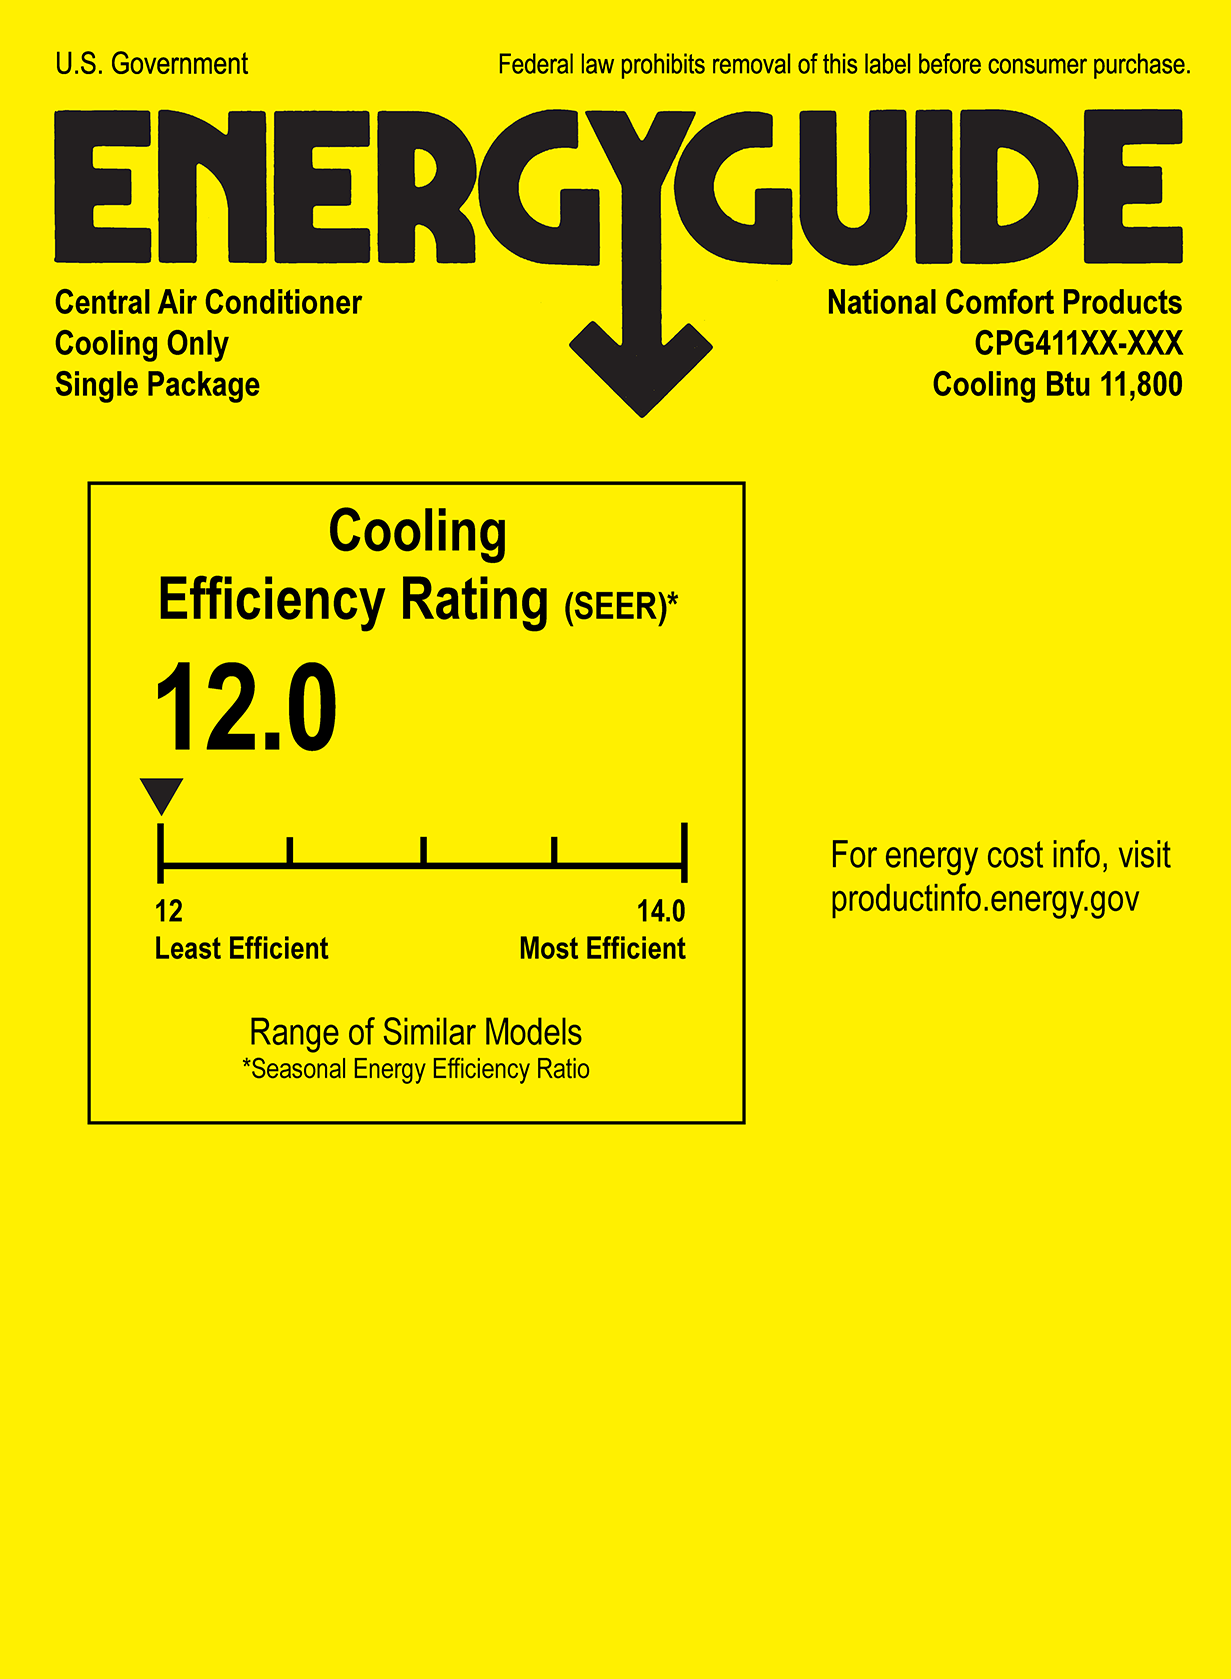 NCP EnergyGuide CPG411XX-XXX 14299031 .png